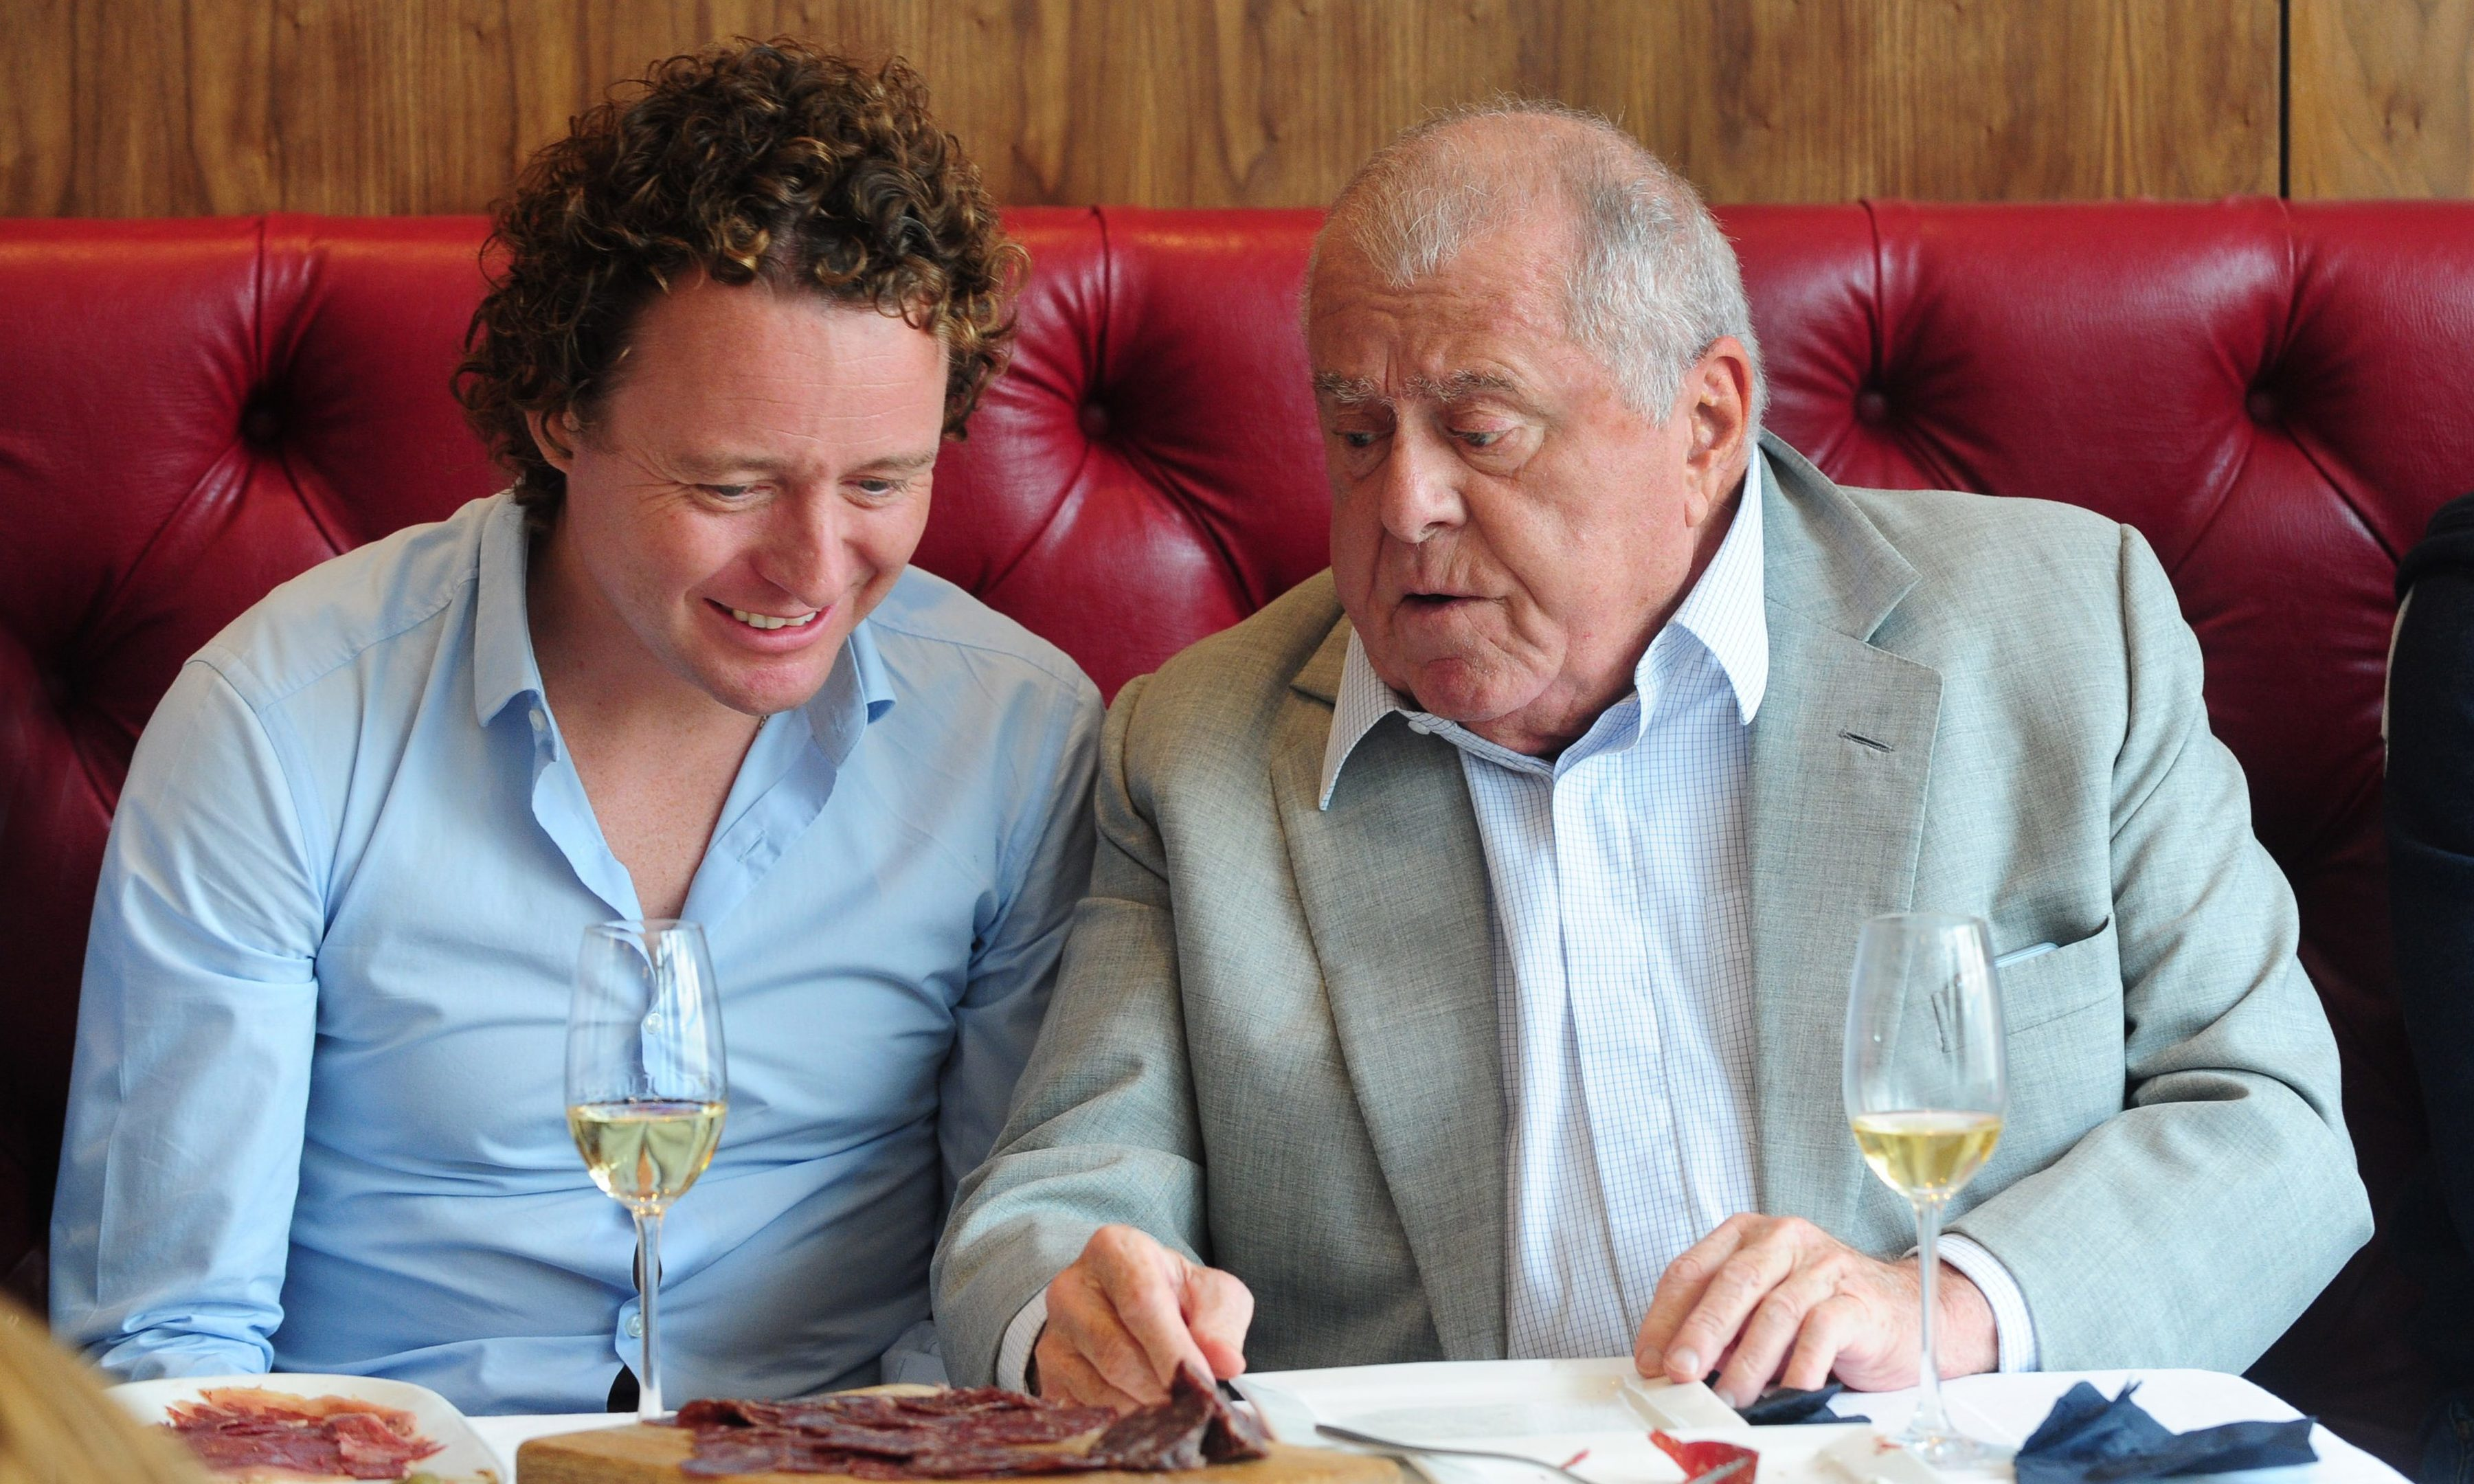 Tom Kitchin of The Kitchin in Leith, and legendary chef Albert Roux at the launch of the Wagyu House in Bridge of Allan.  The new high-street store is the brainchild of the husband and wife team, Mohsin Altajir and Martine Chapman, behind Highland Wagyu.